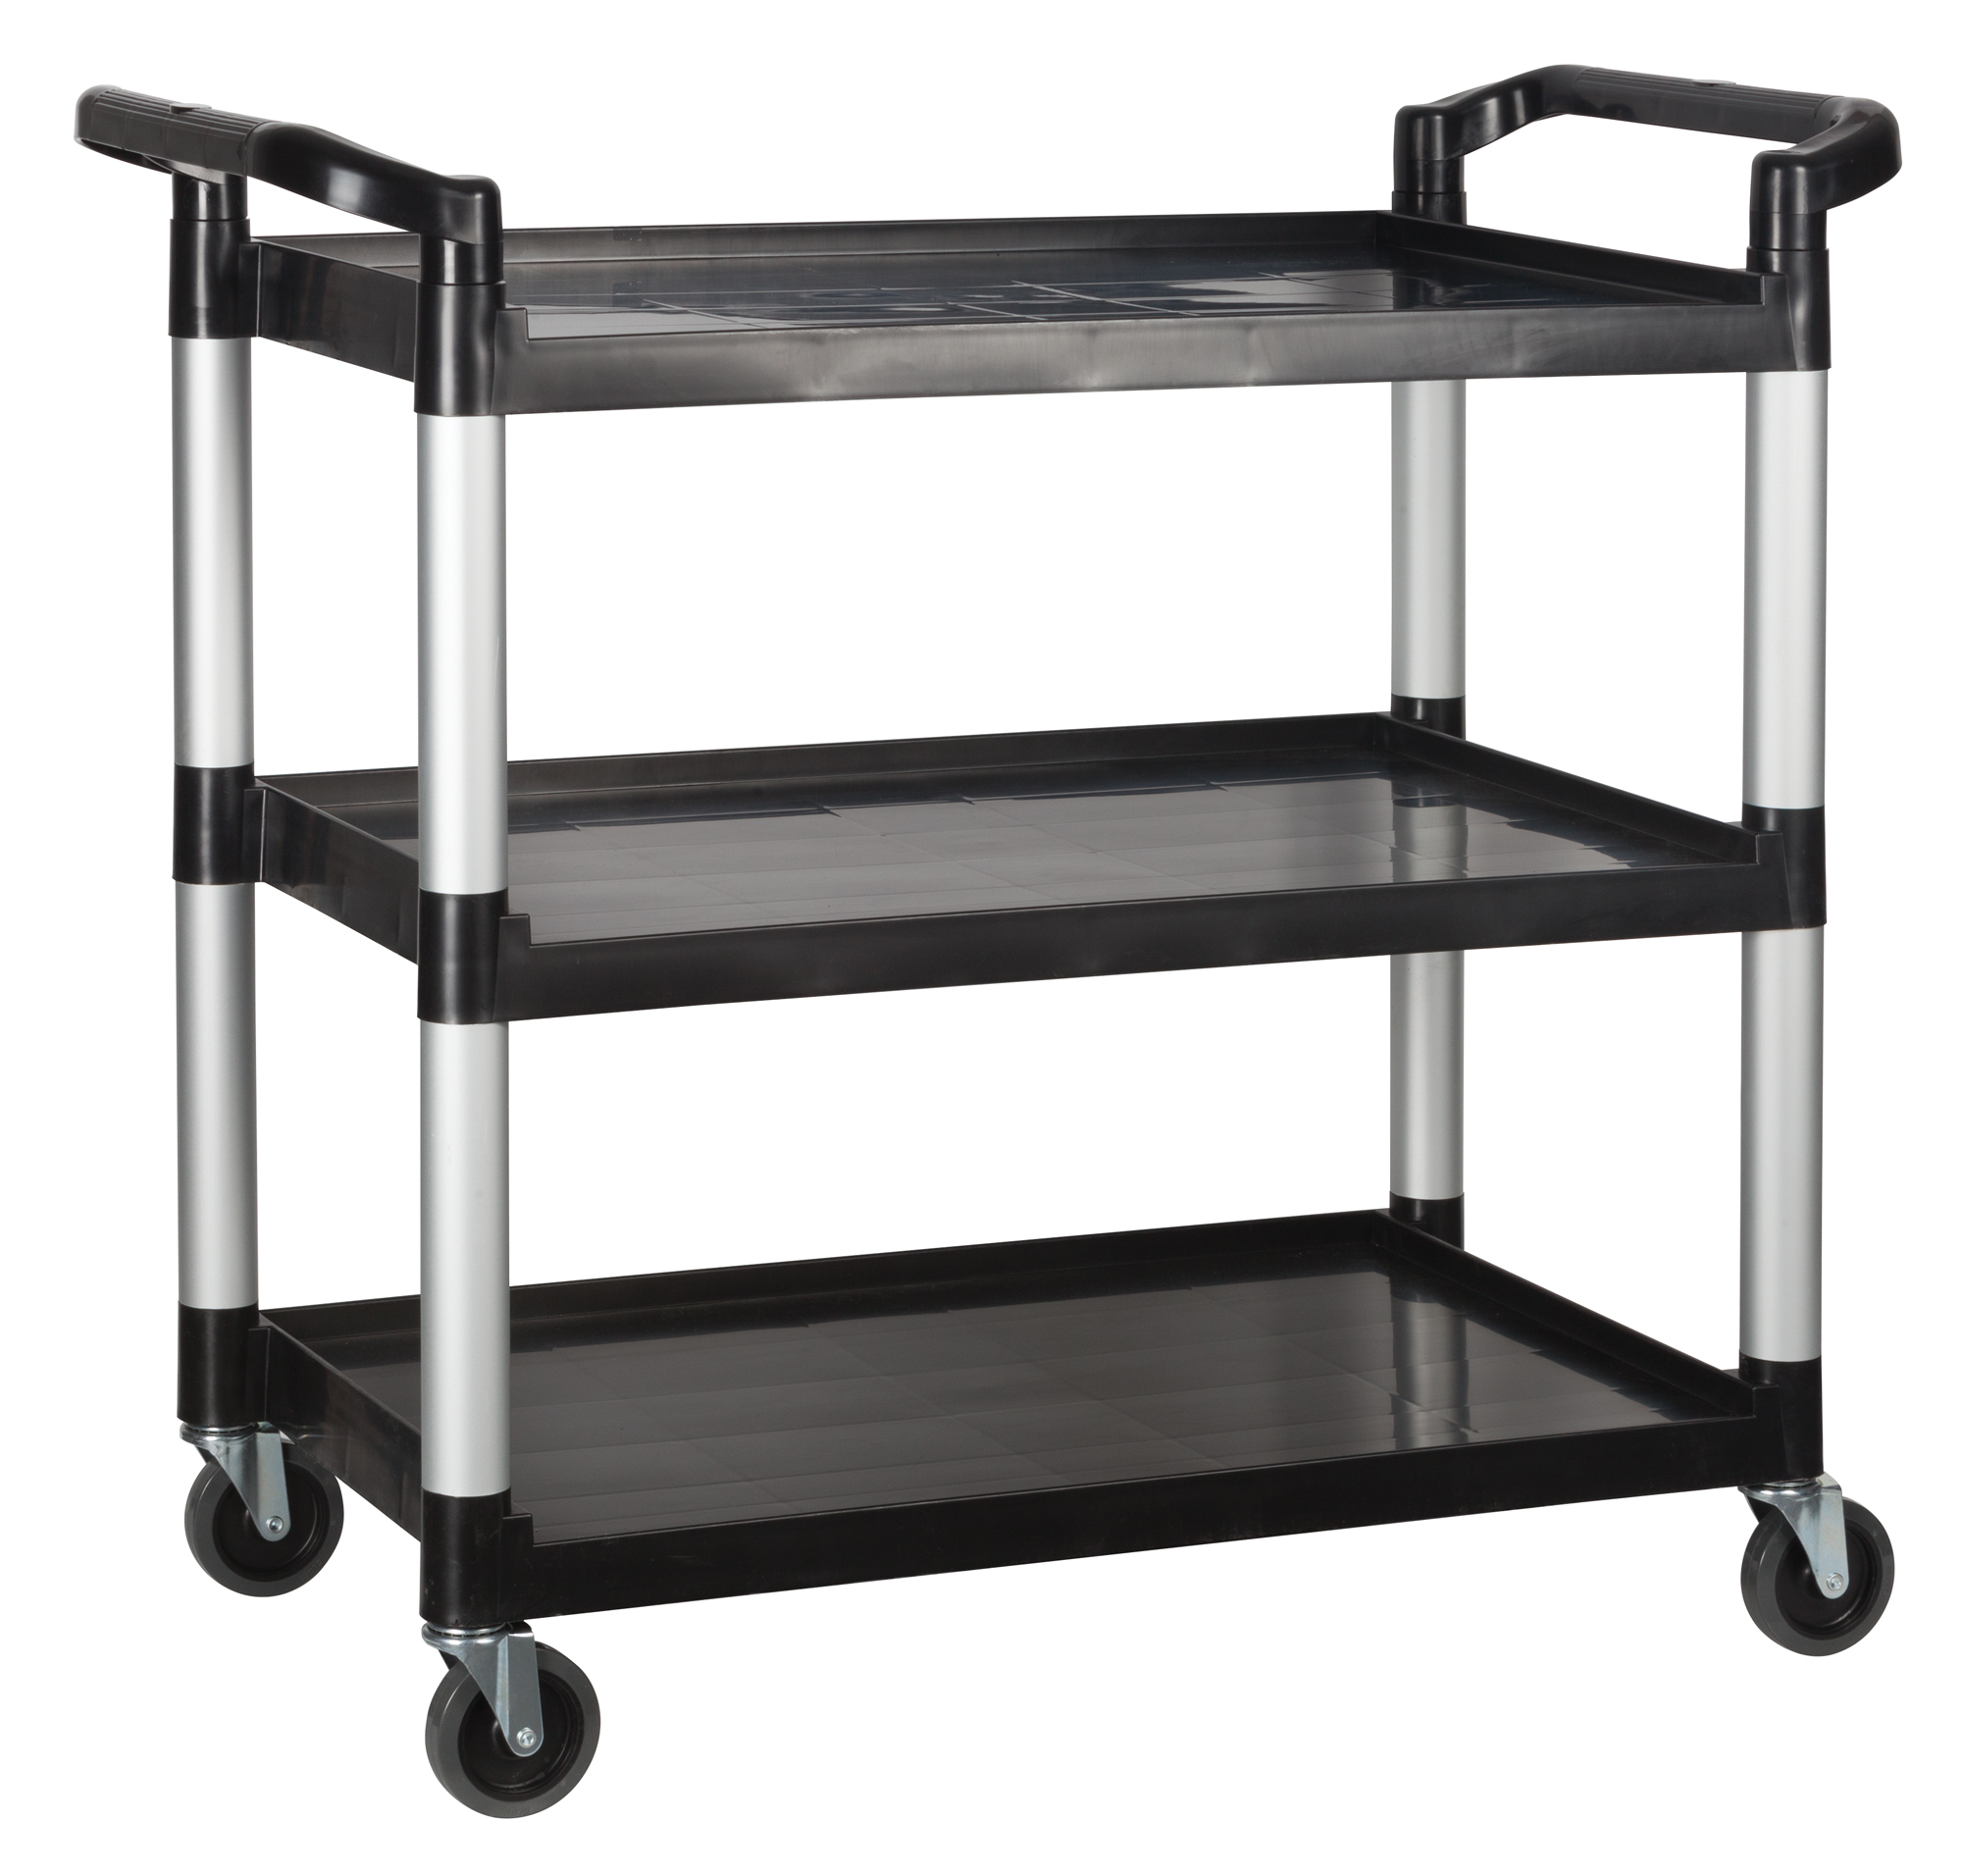 Winco UC-3019K utility & bus carts